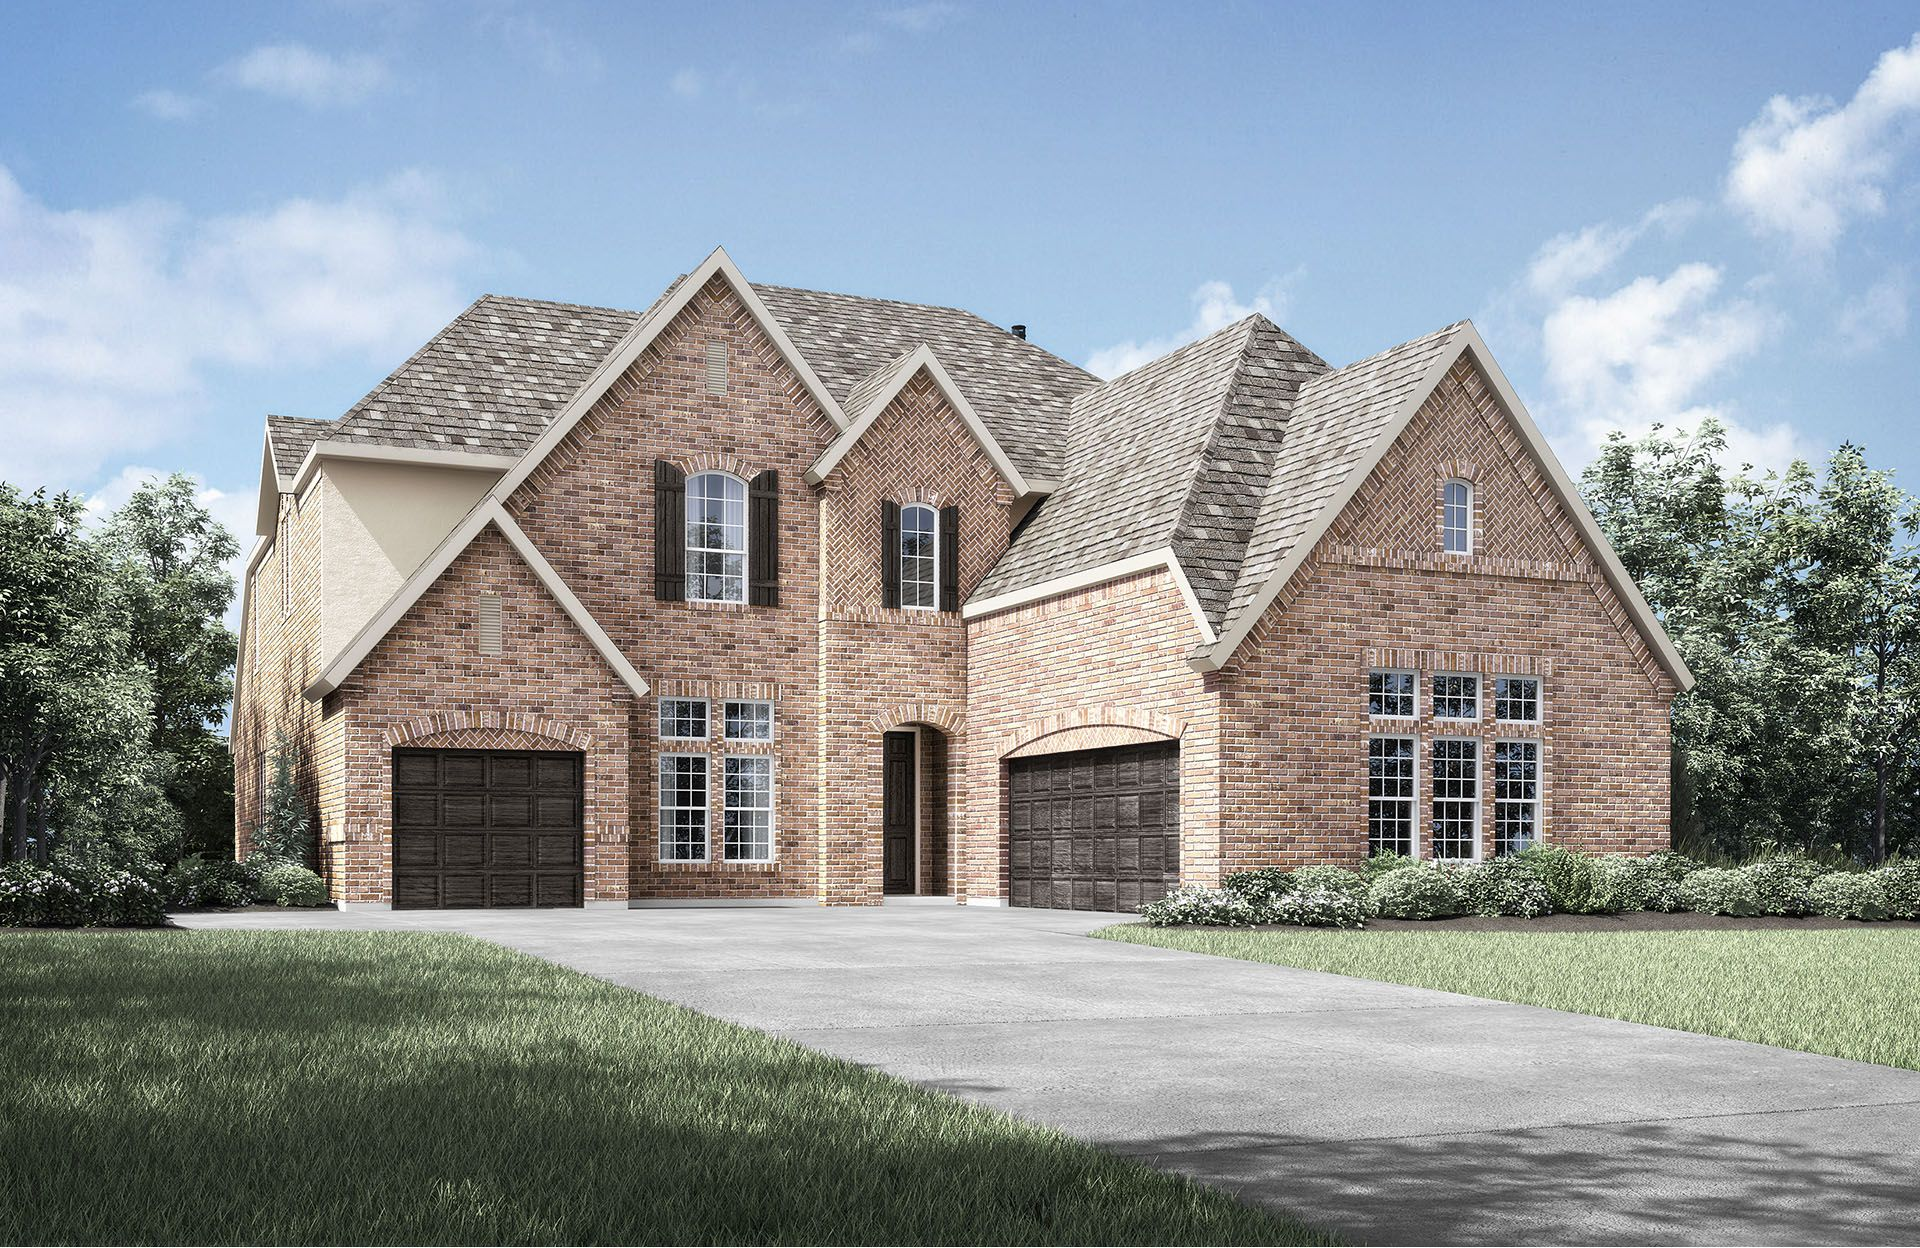 Single Family for Active at Grayford 2910 Twin Eagles Drive Celina, Texas 75009 United States